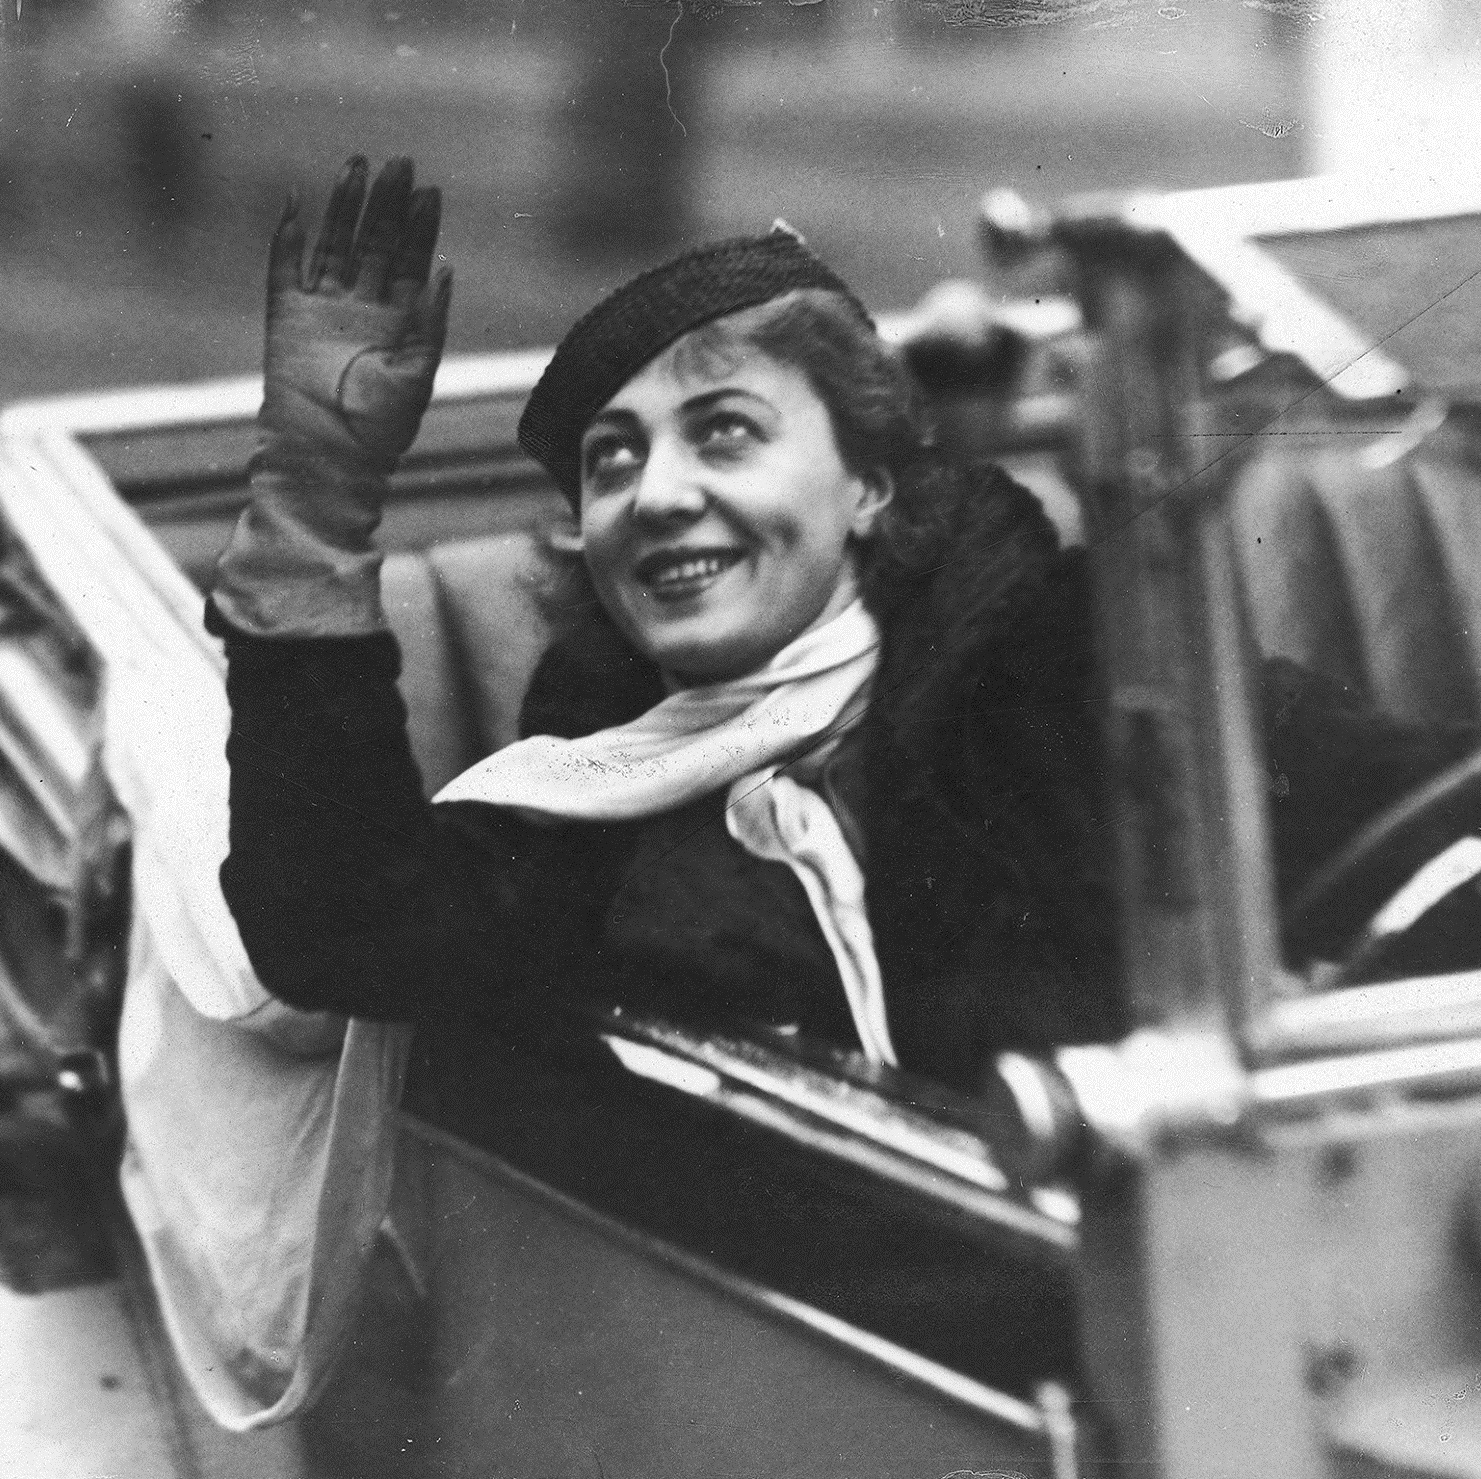 Actress Maria Malicka in a car (1936), collection of National Digital Archive